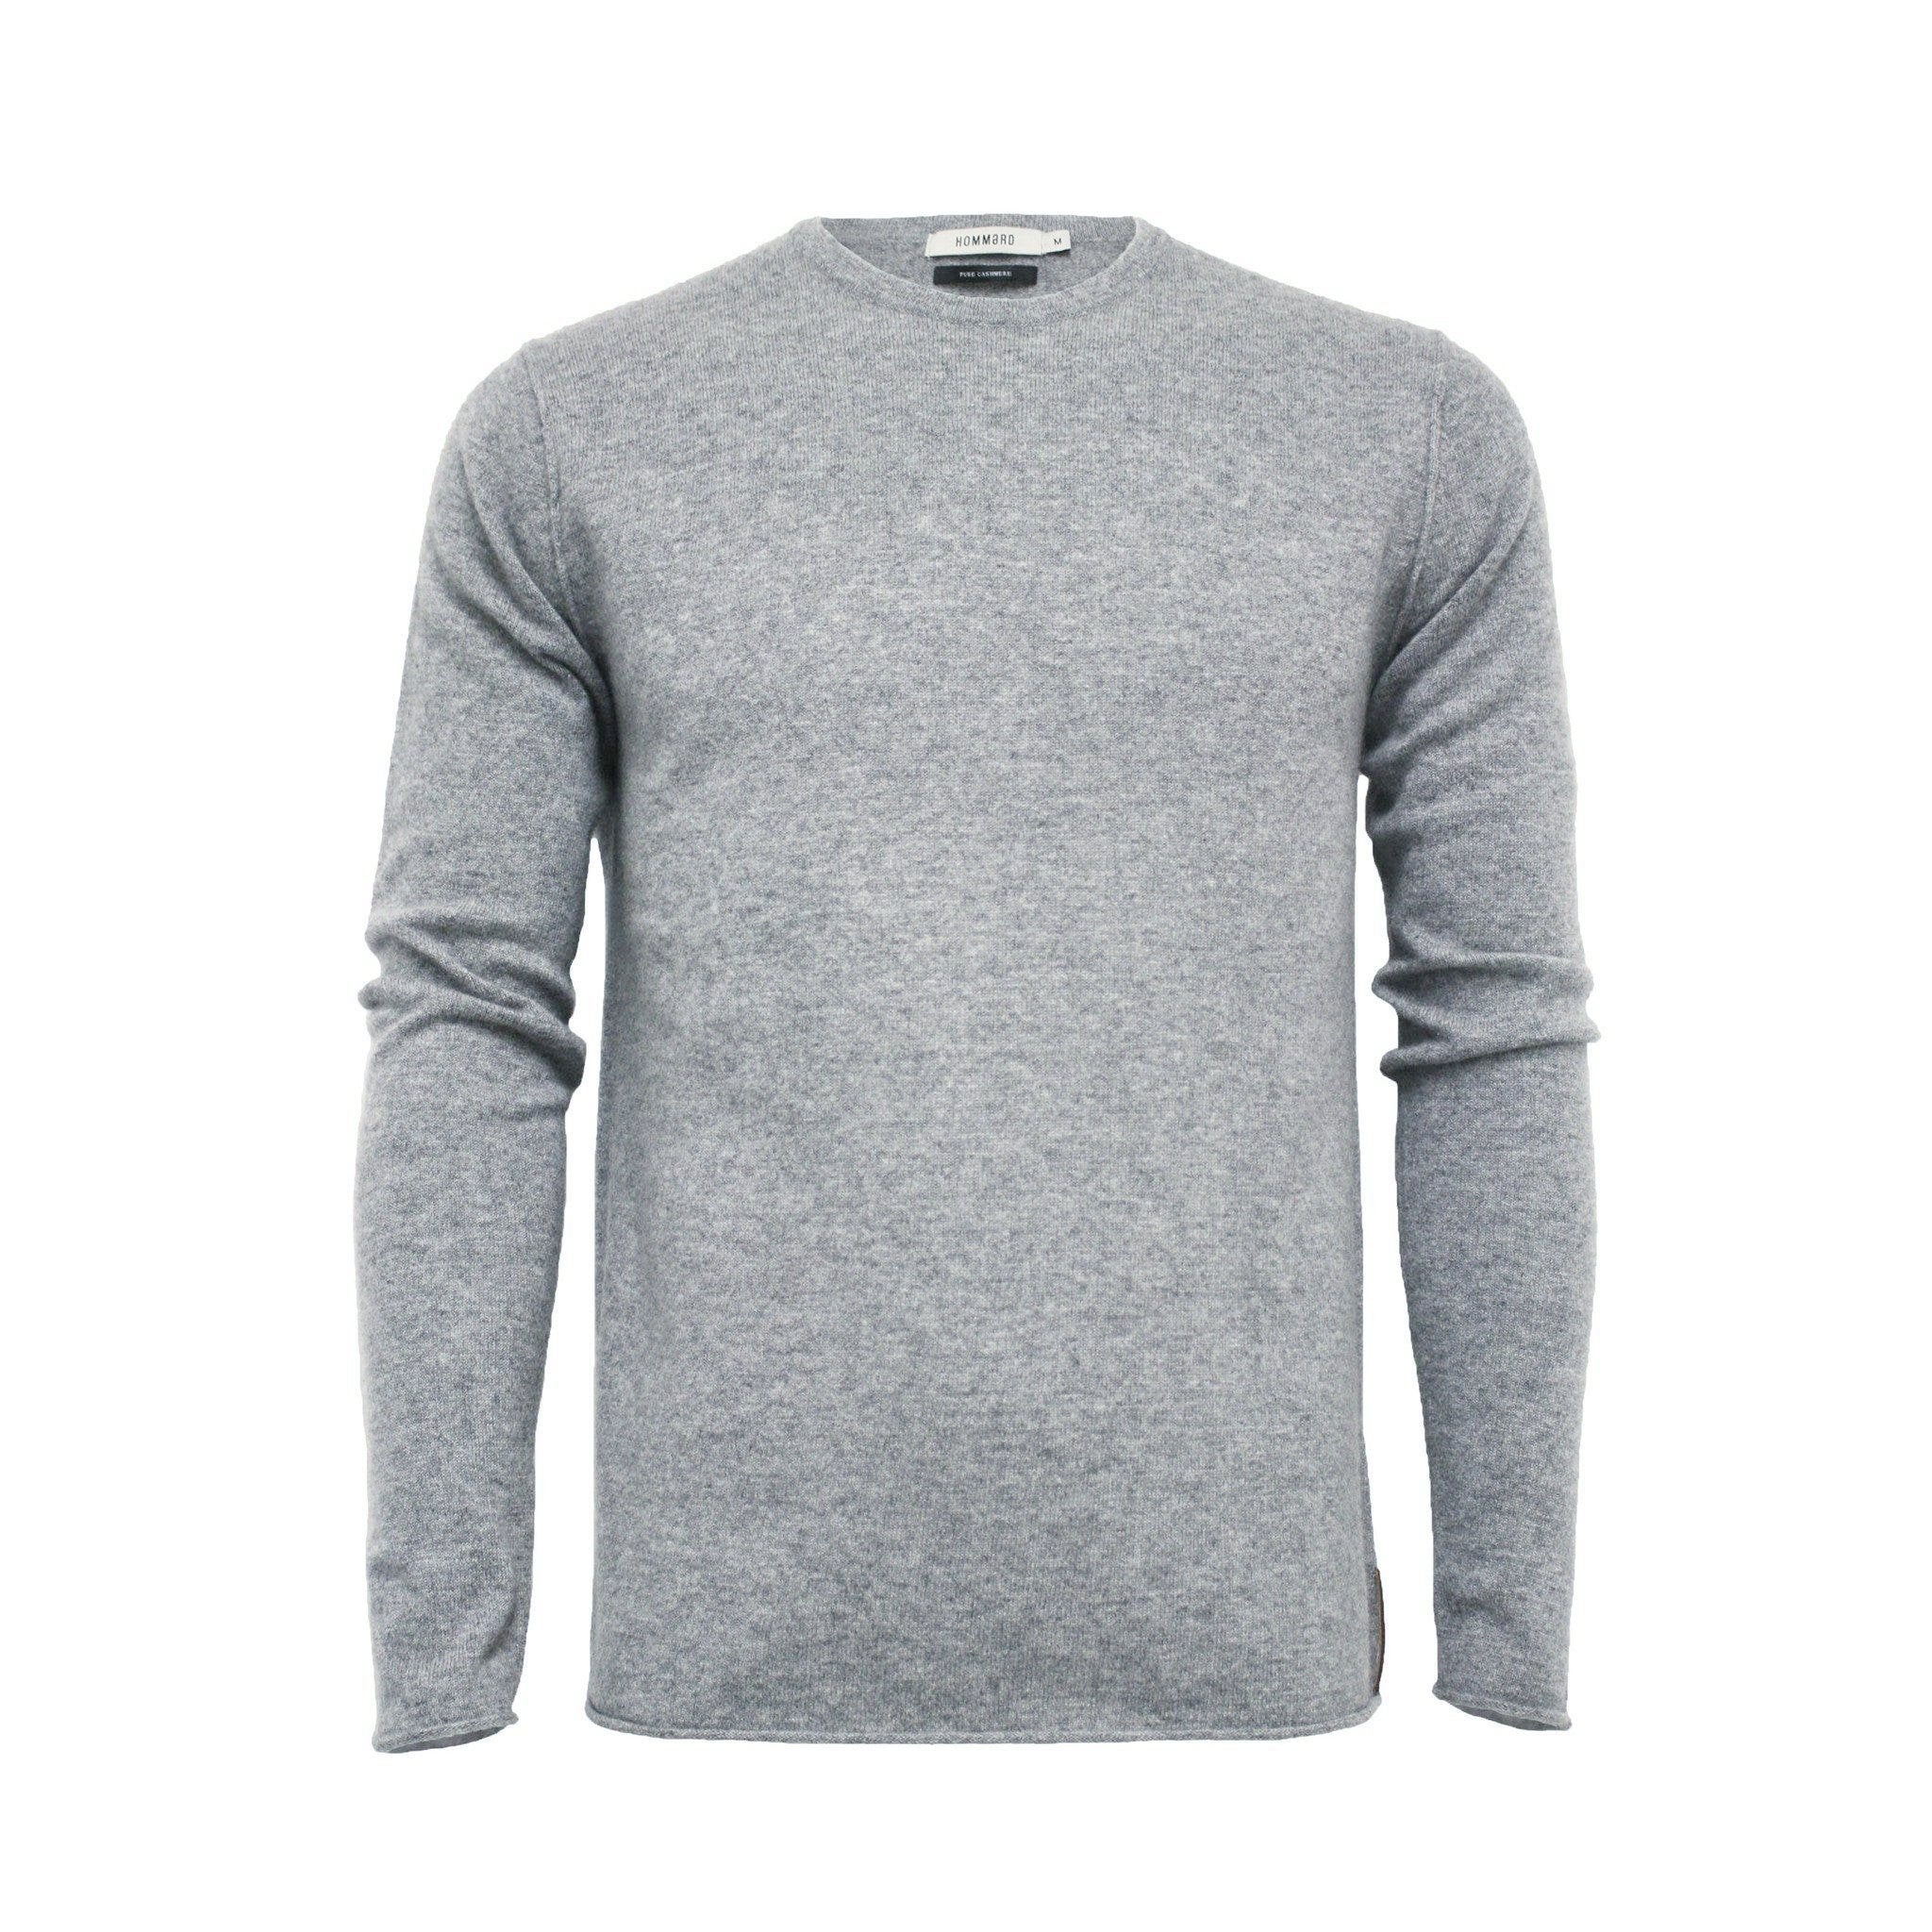 Ripley Crew Neck Cashmere Sweater